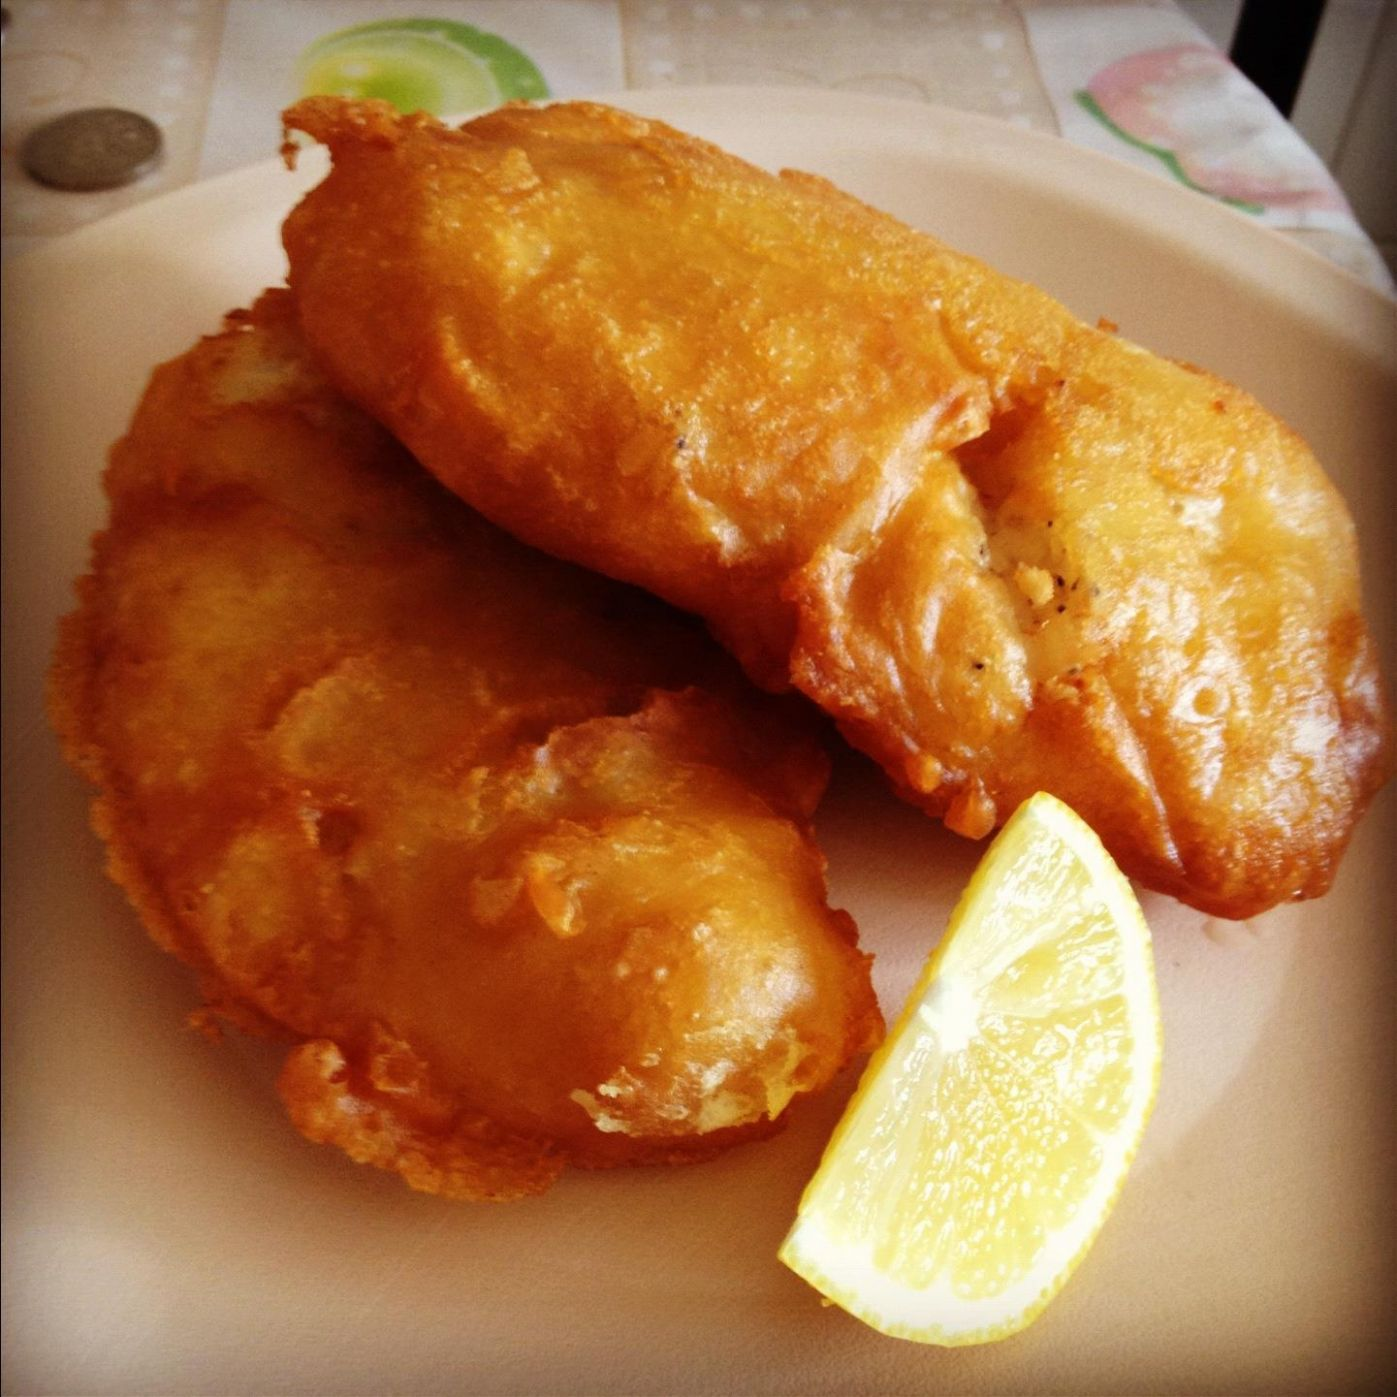 Shallow fried fish recipe - All recipes UK